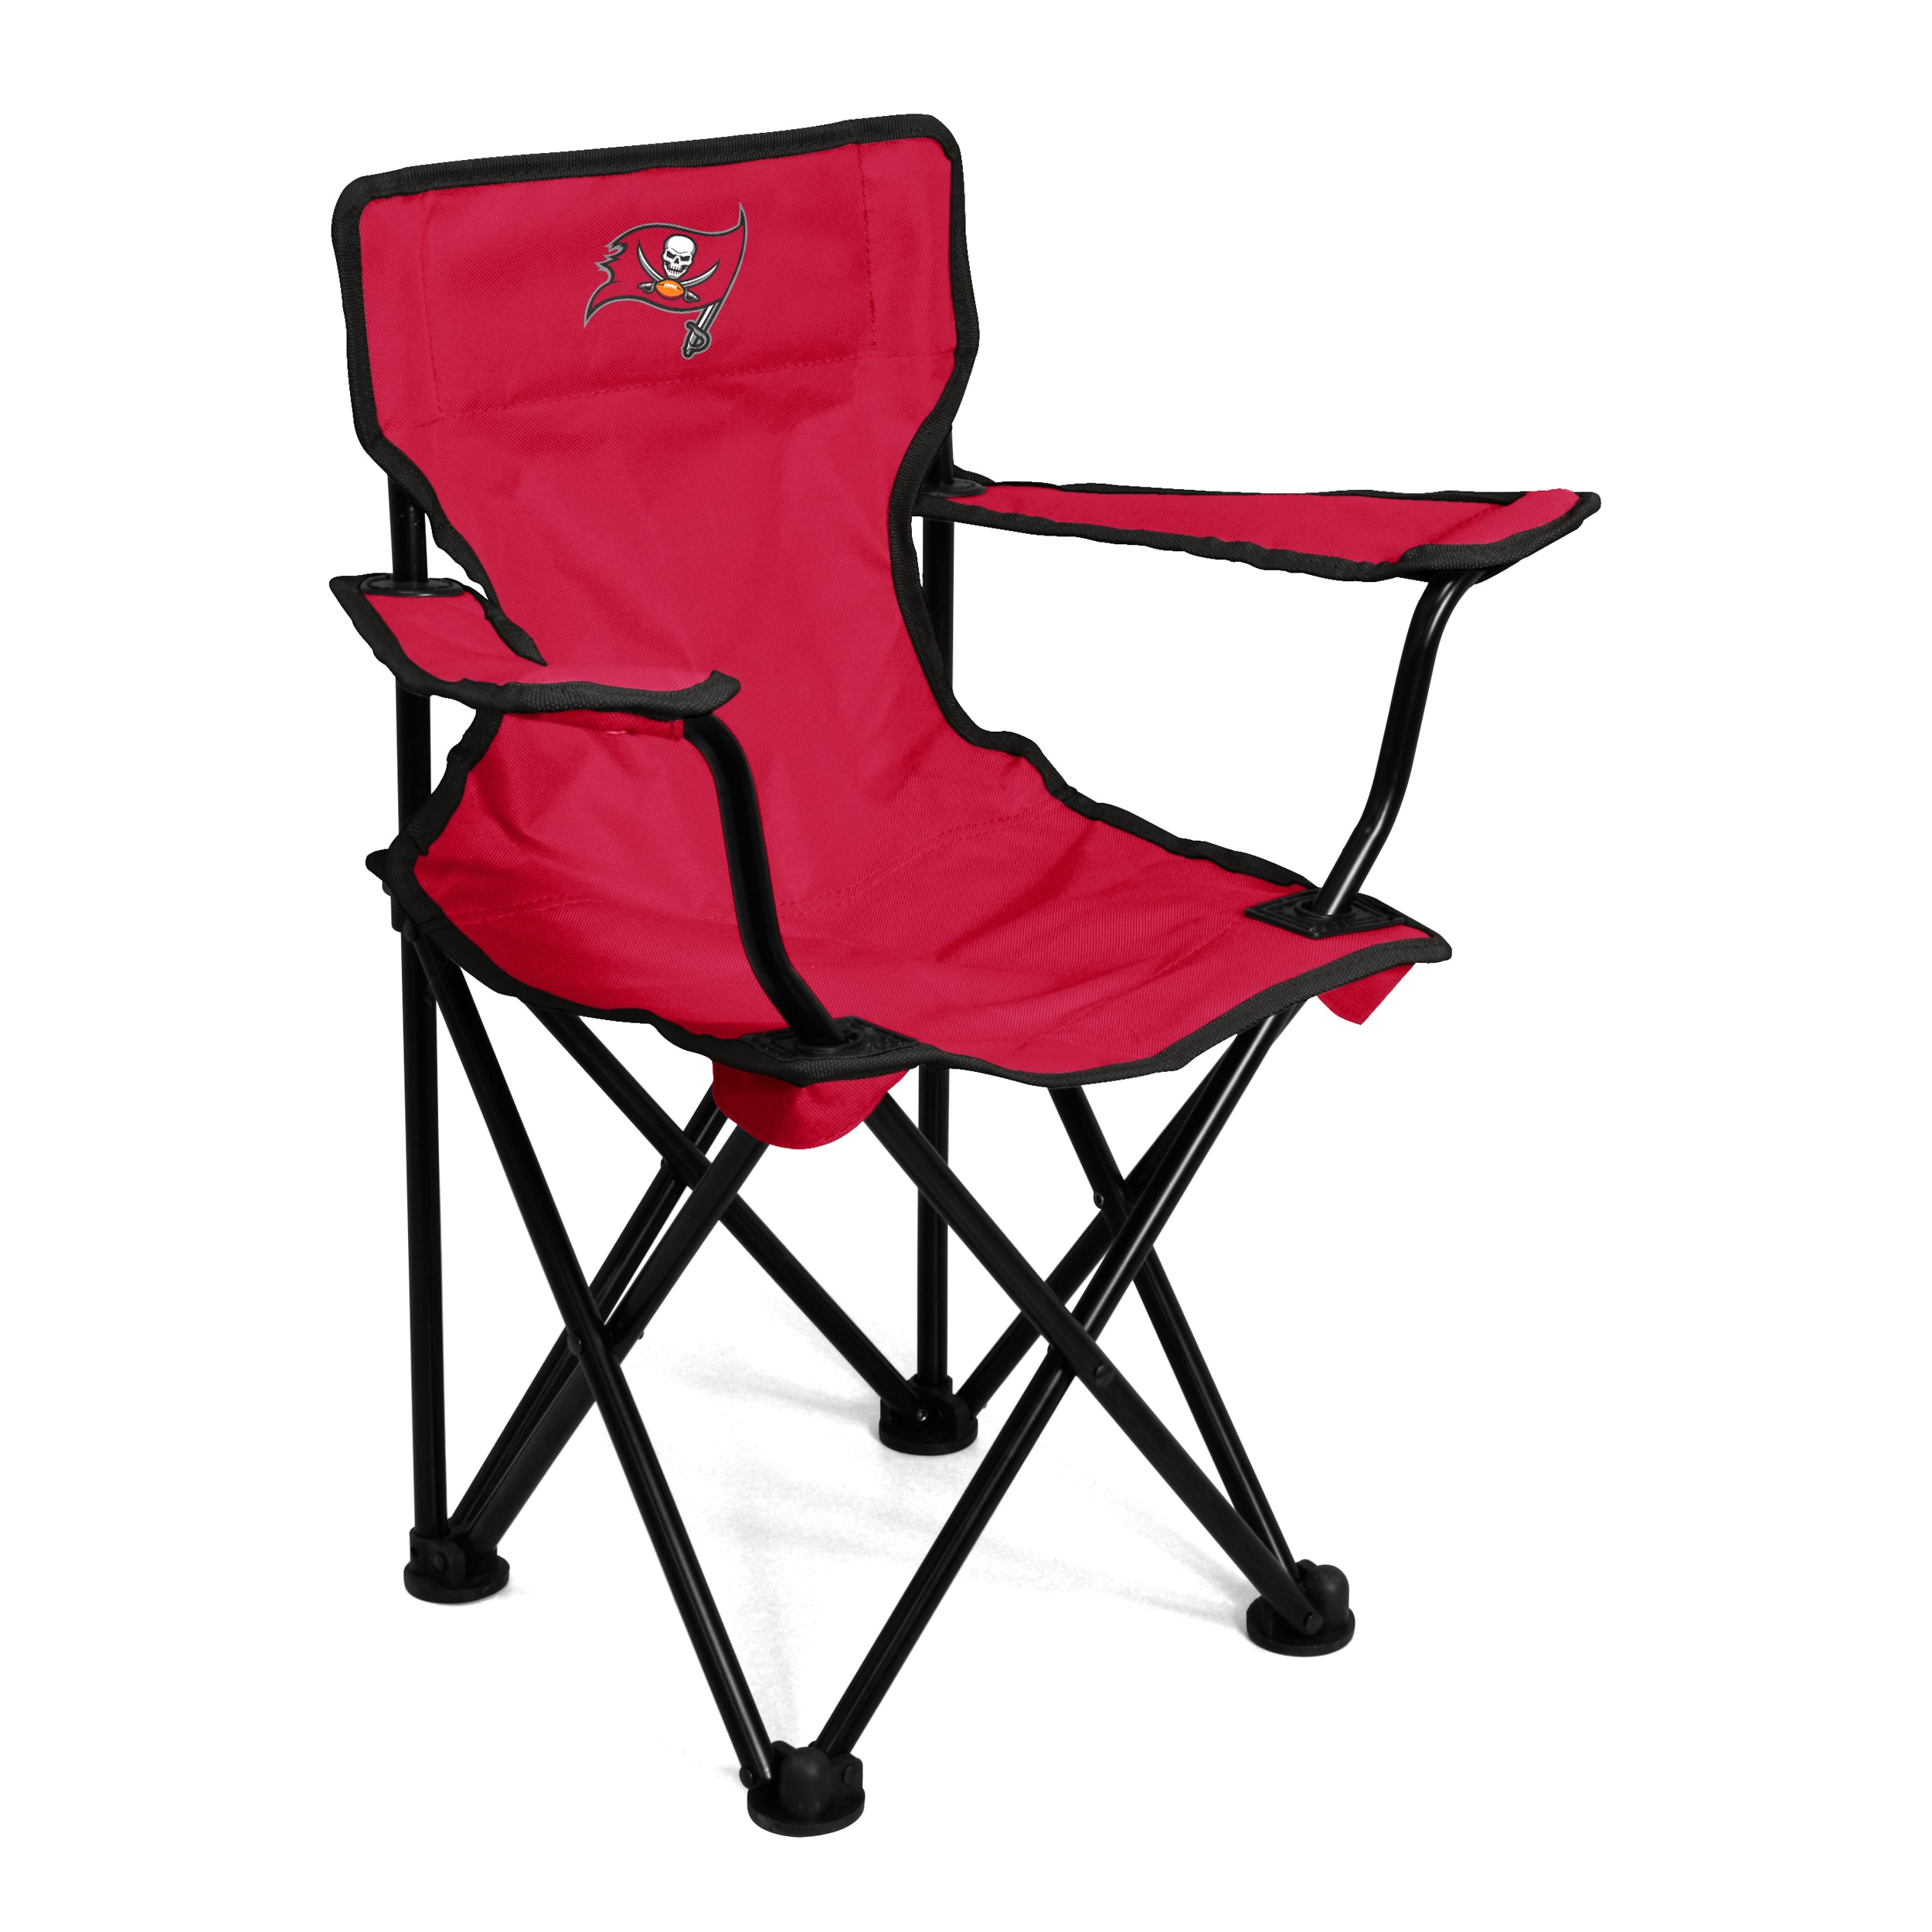 Tampa Bay Buccaneers Toddler Tailgate Chair